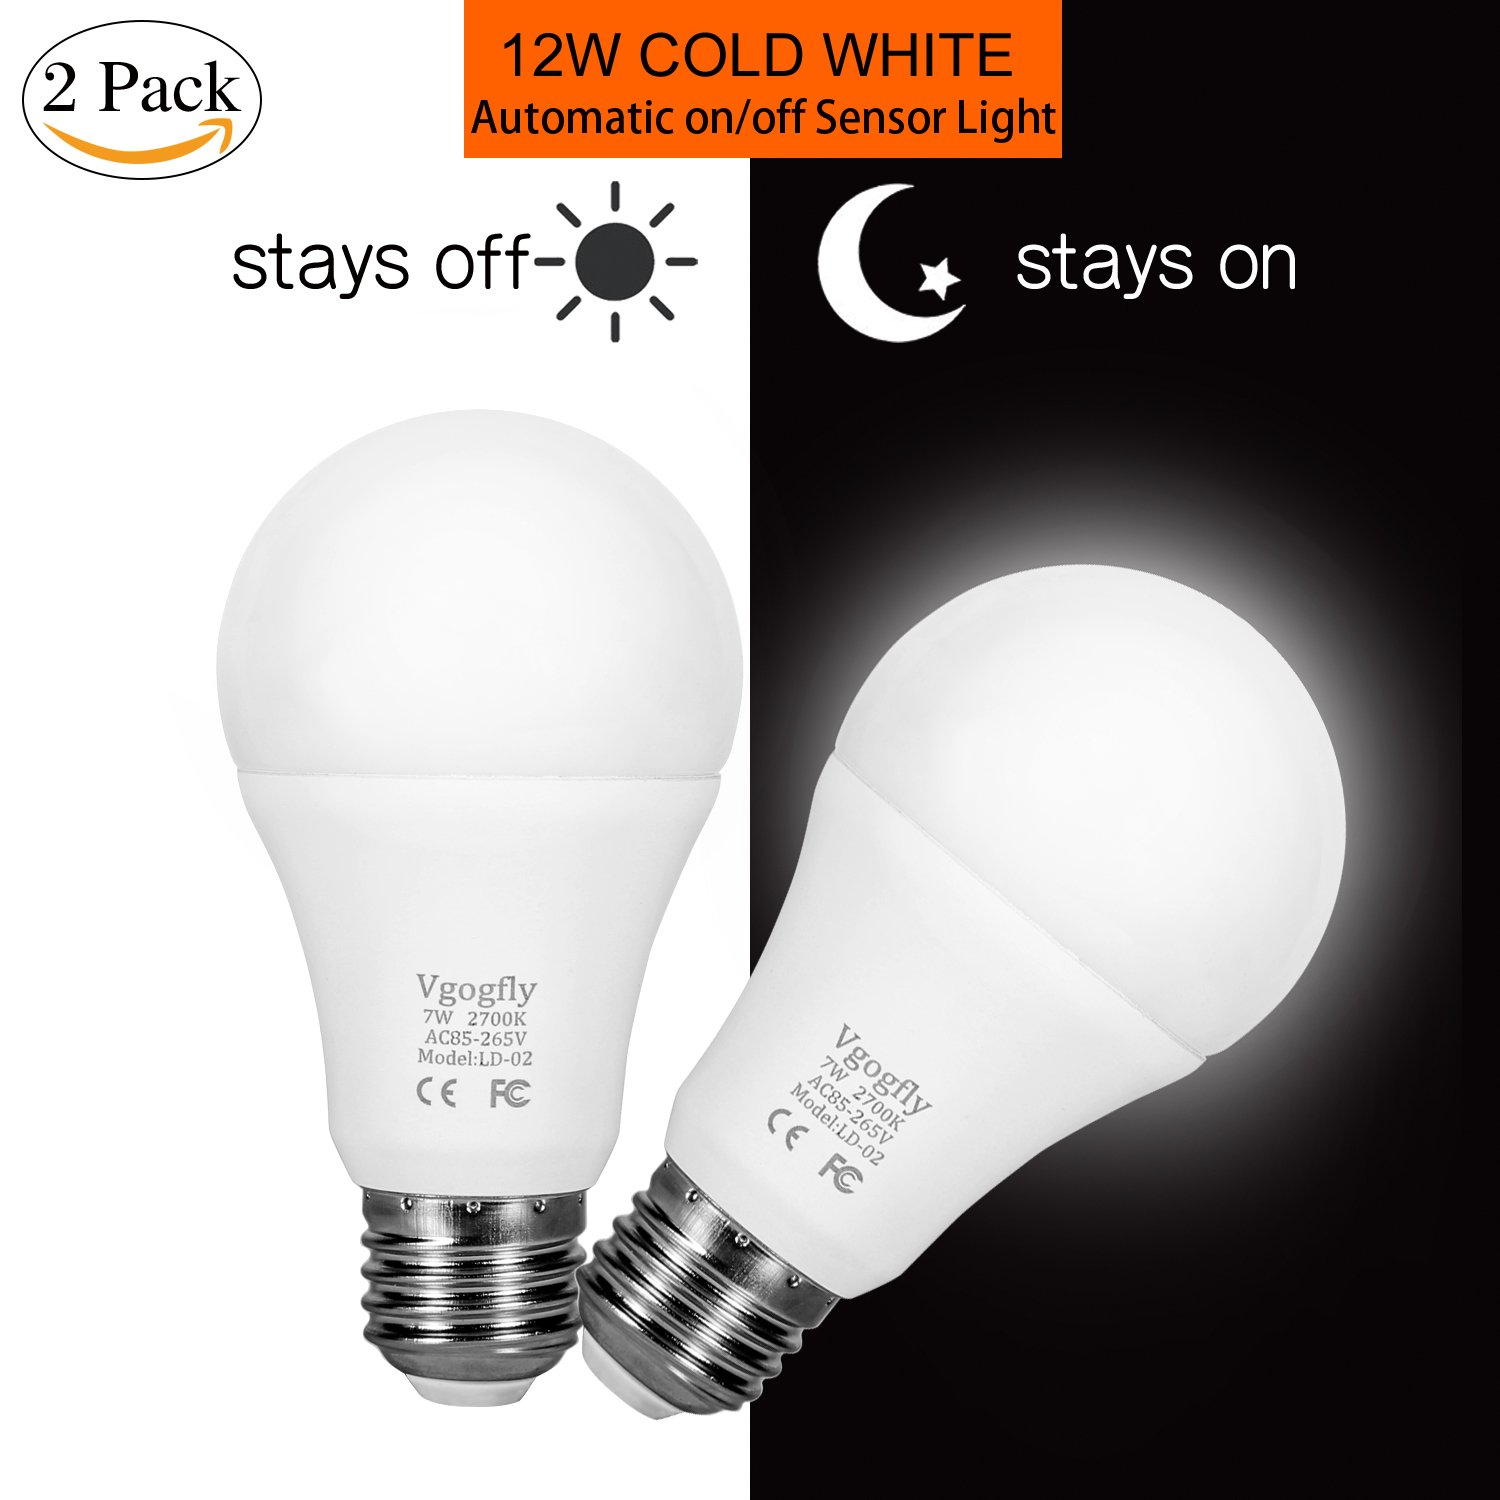 Dusk to Dawn Light Bulb 7W E26 Smart Sensor LED Bulbs Built-in Photosensor Detection with Auto Switch Outdoor Indoor LED Lighting Lamp for Porch Front Door Garage Basement (Cool White, 2 pack)